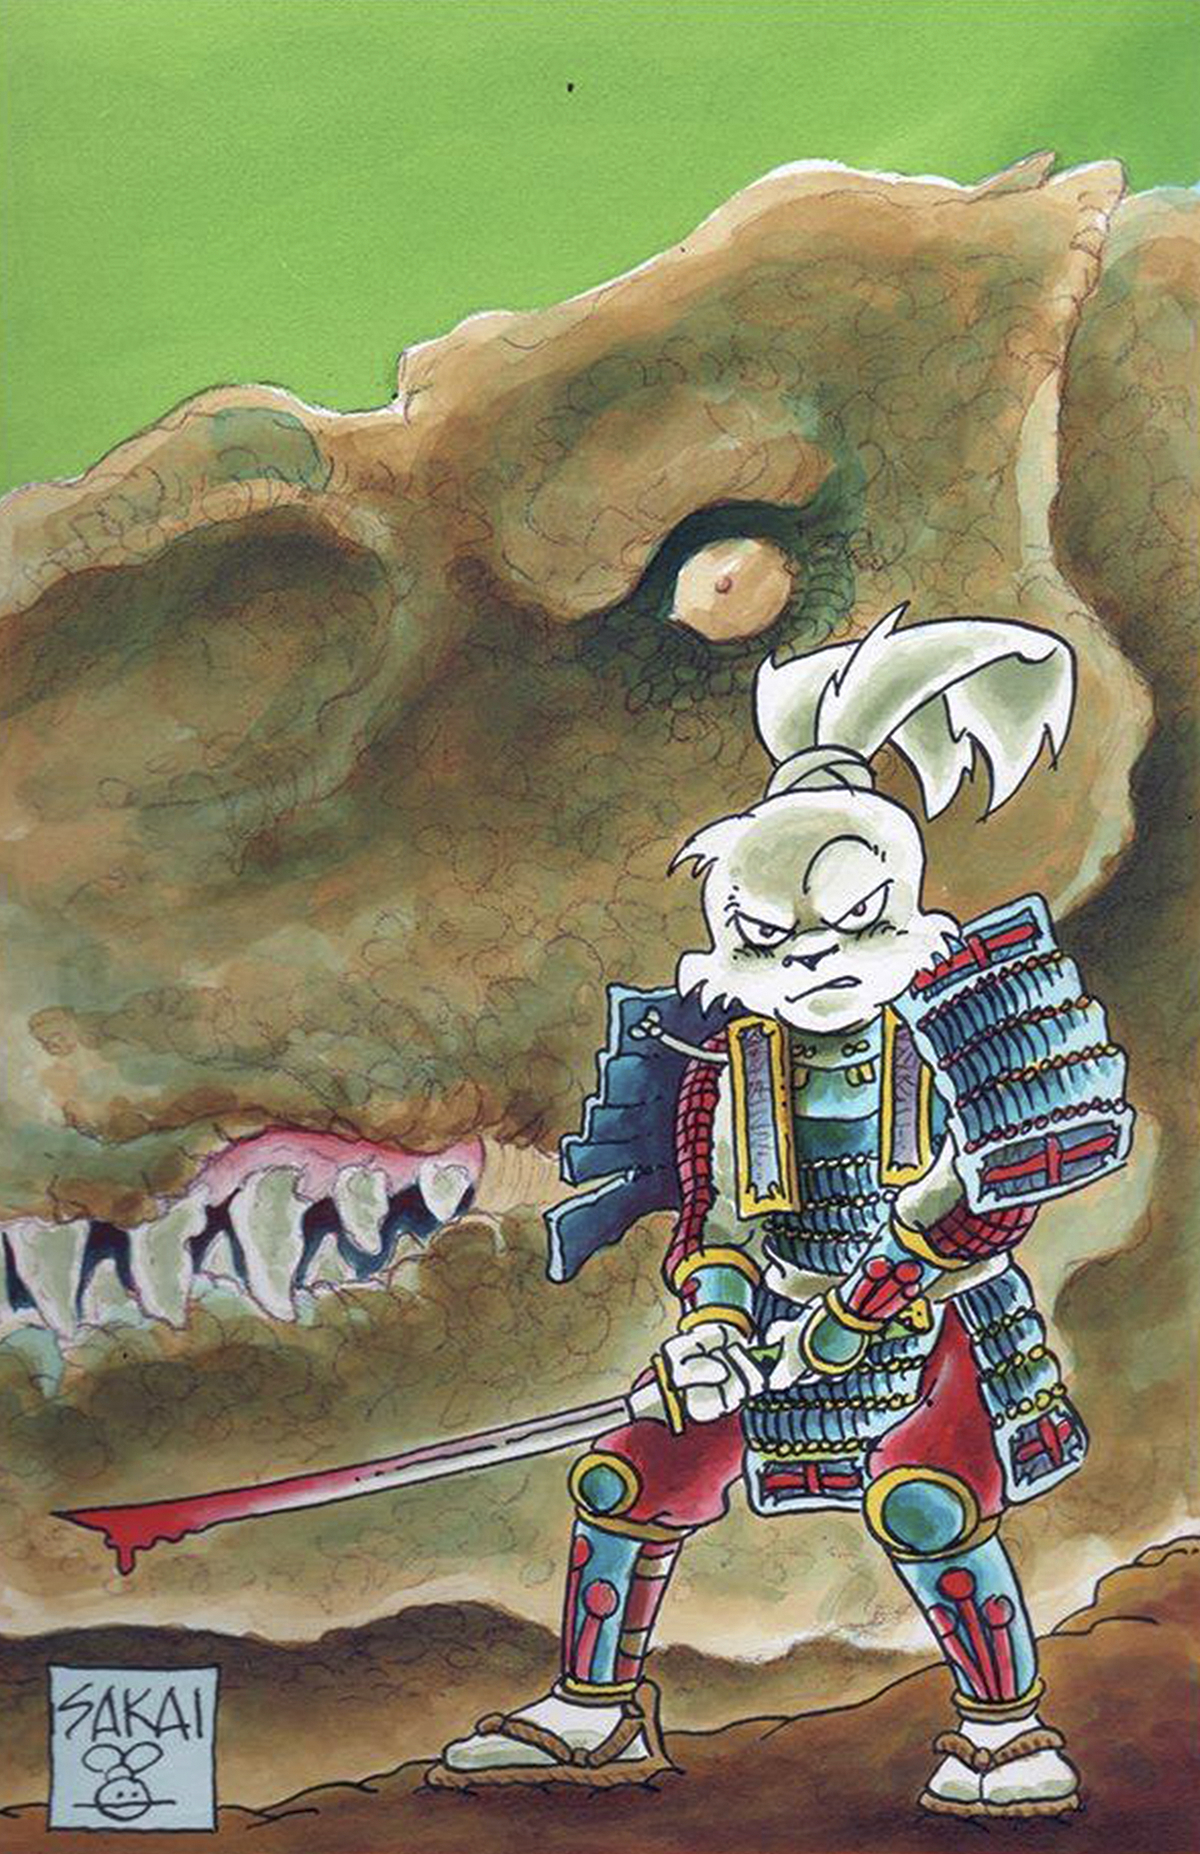 SAKAI PROJECT HC 30 YEARS USAGI YOJIMBO